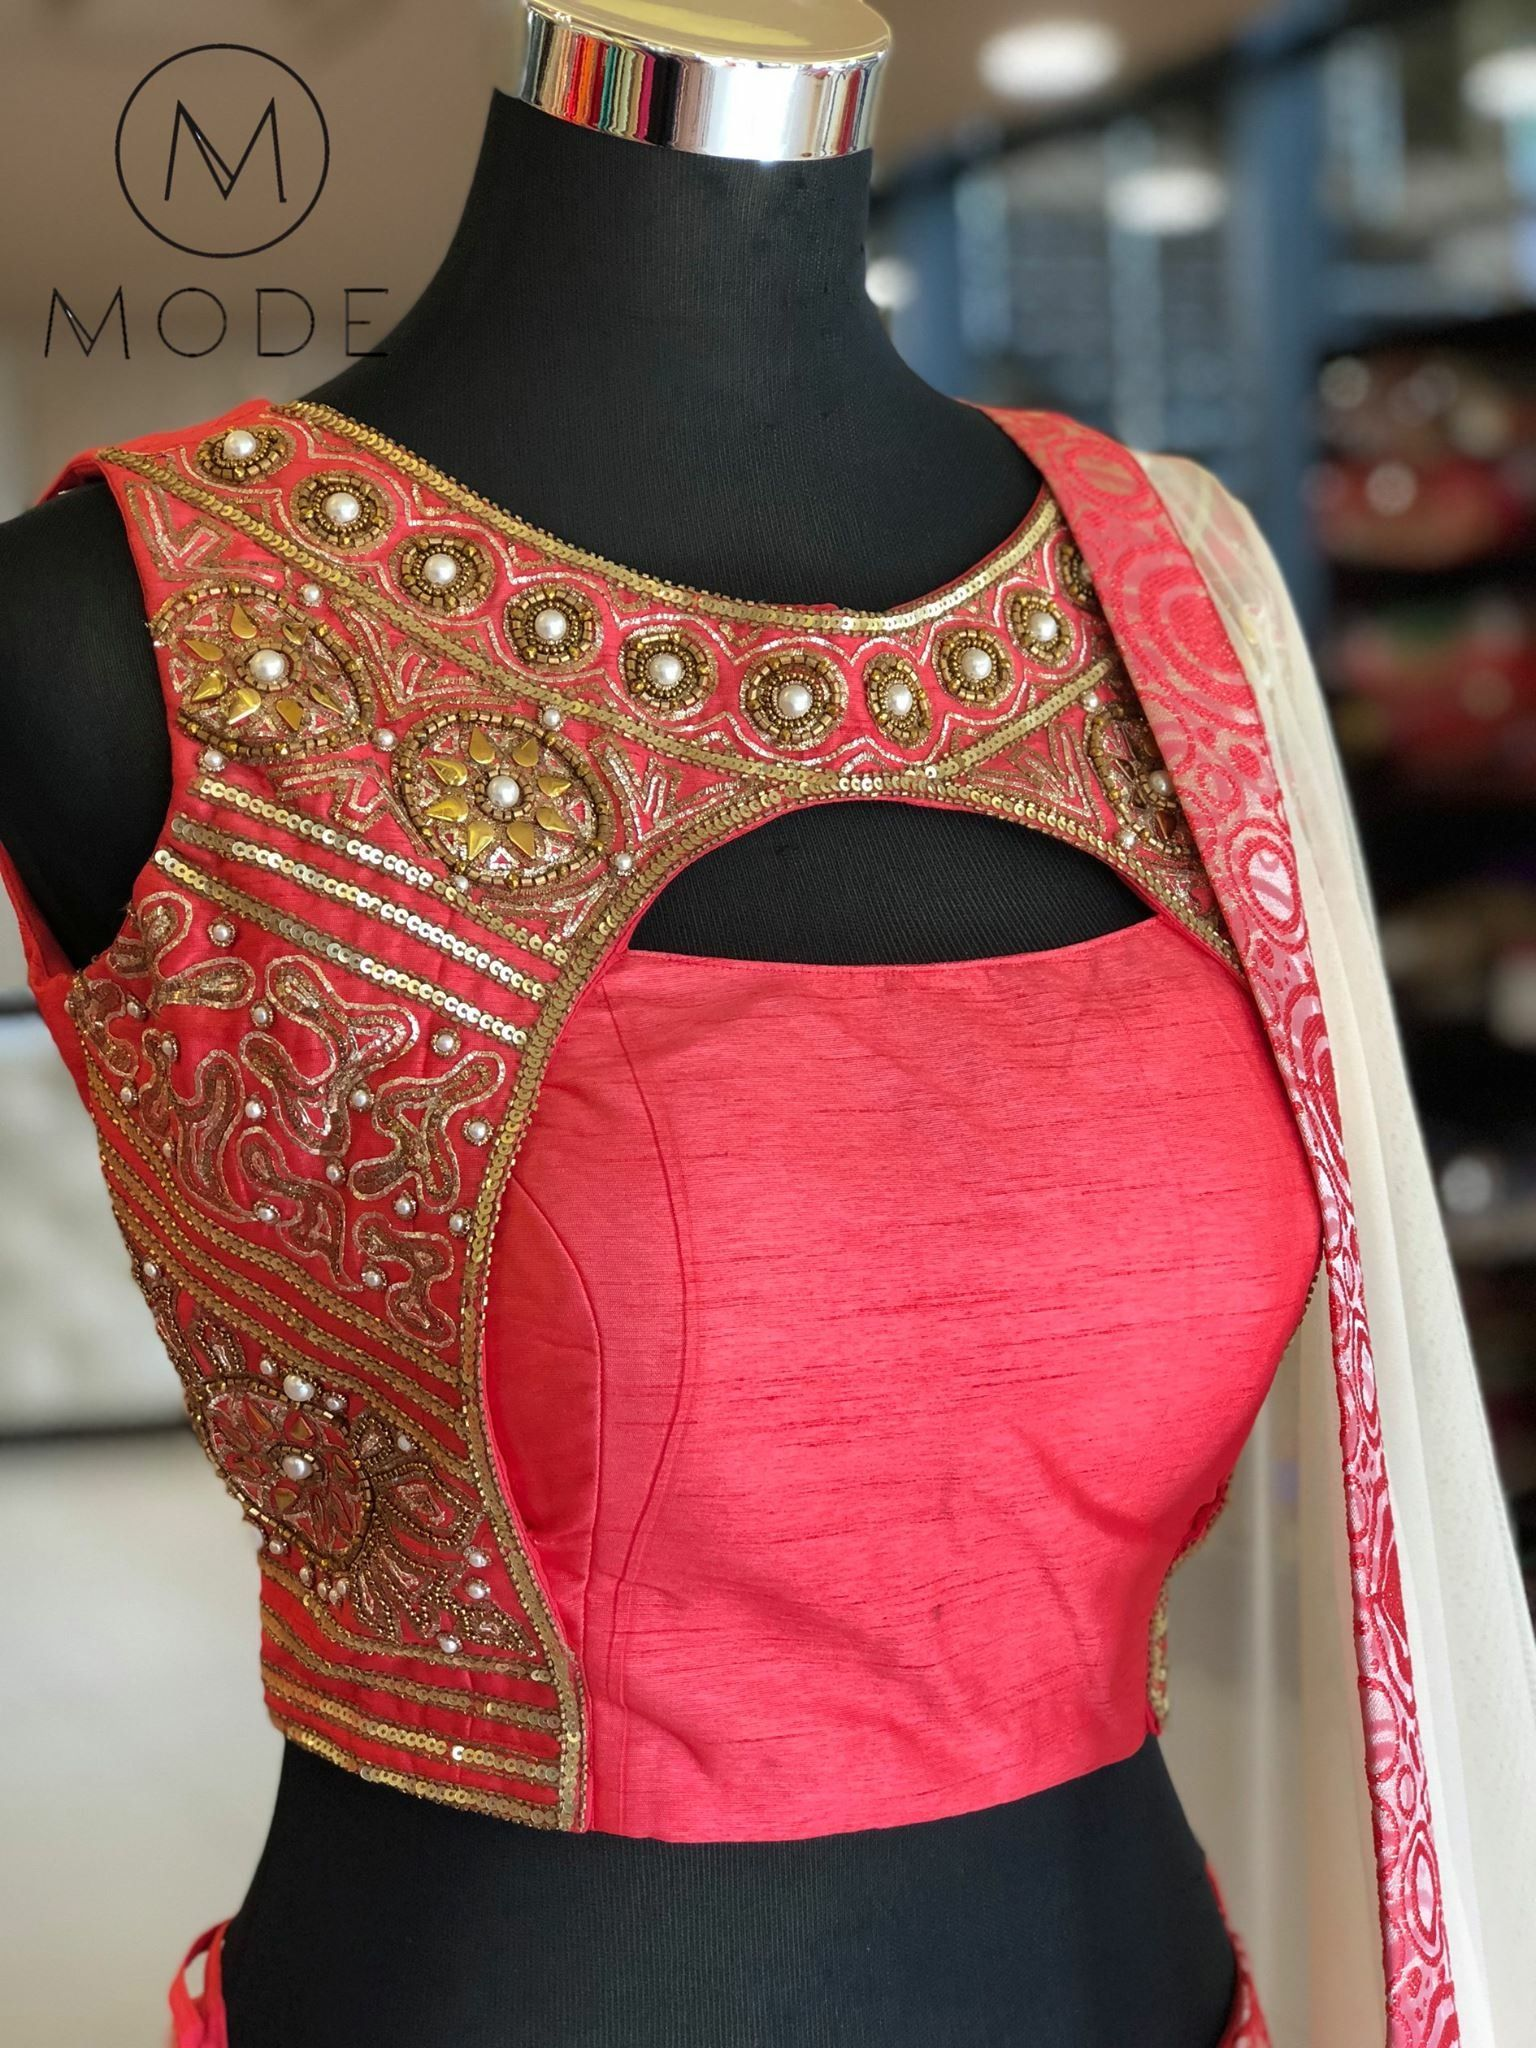 Pinterest Bhavi91 Trendy Blouse Designs Fancy Blouse Designs